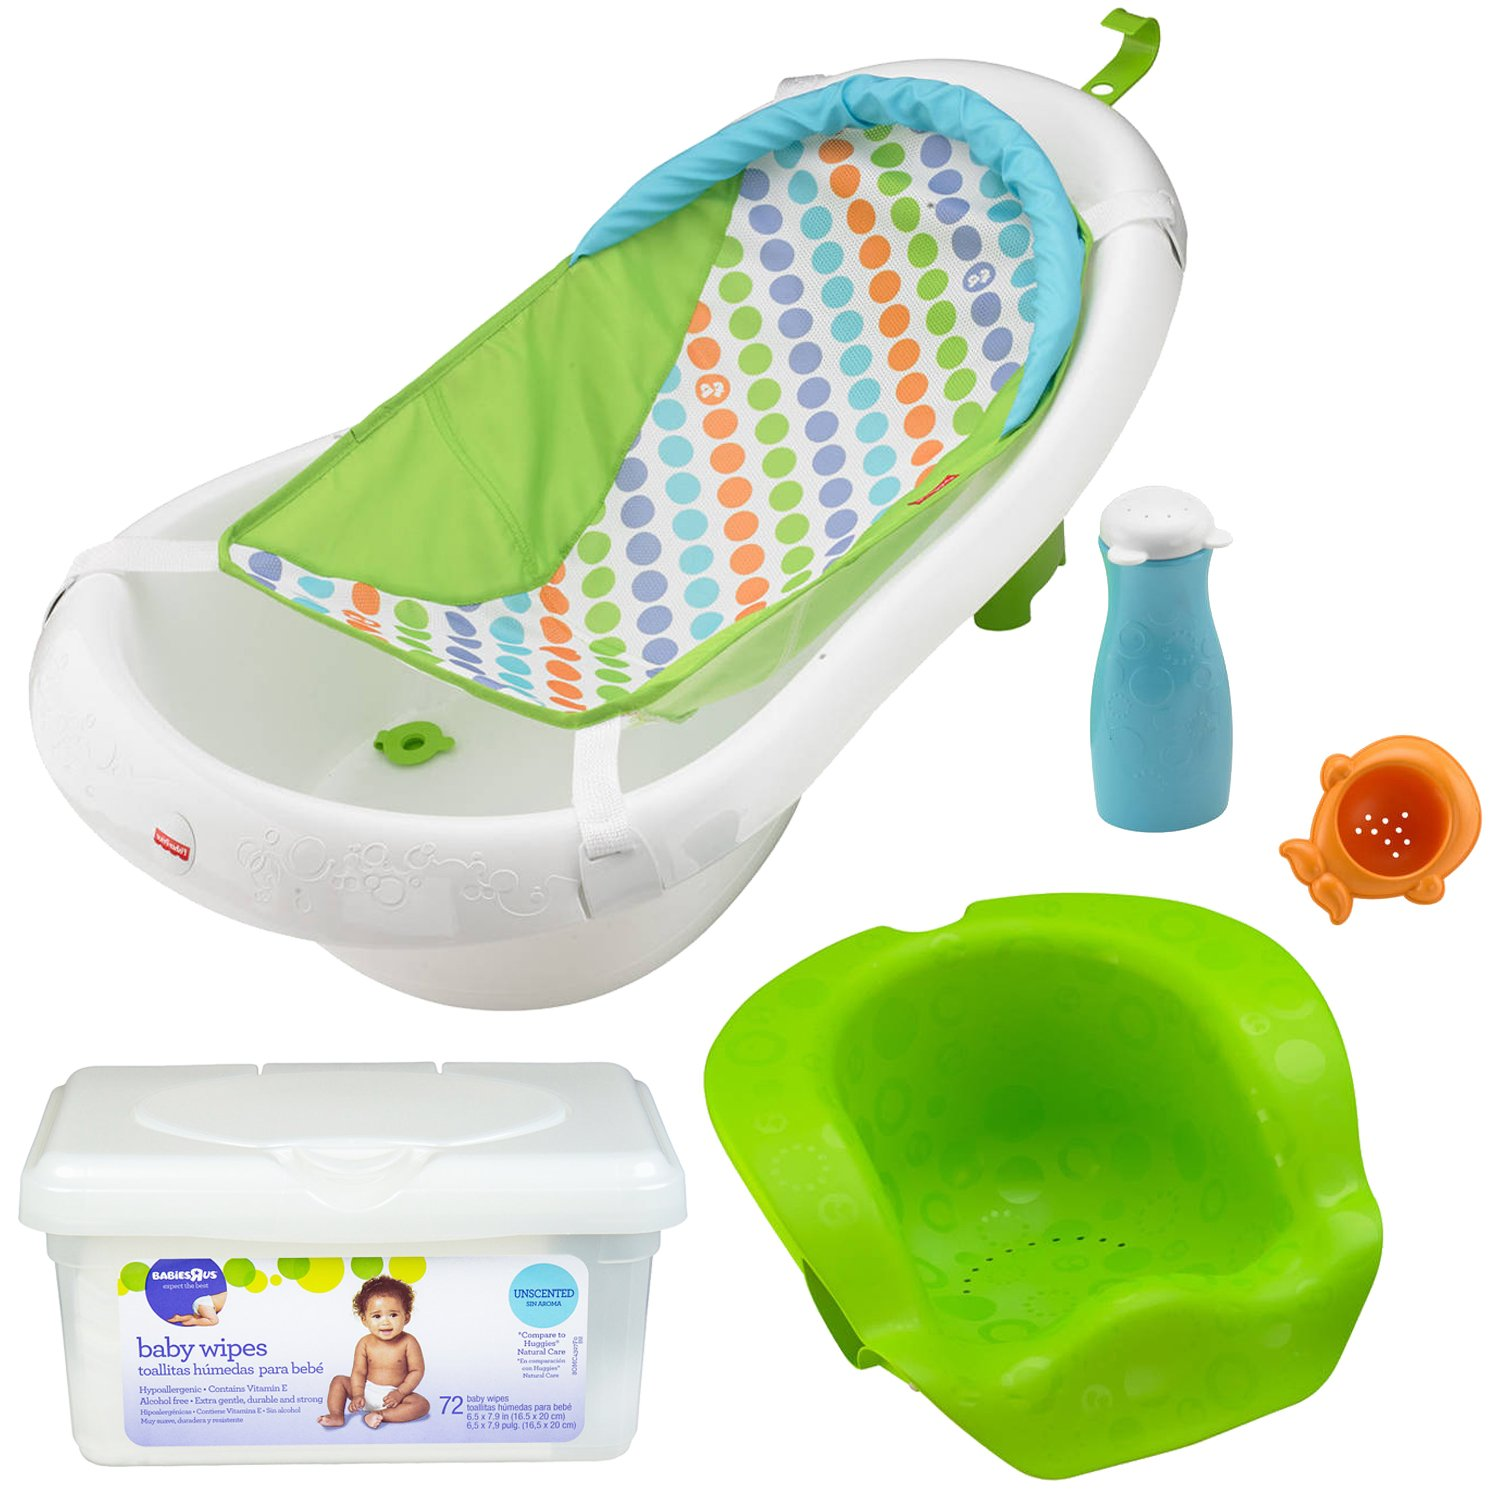 Amazon.com : Fisher Price Infant to Toddler 4-in-1 Sling Sit-Me-Up and Grow-with-Me Bathing Shower Tub for Girls with Baby Wipes : Baby